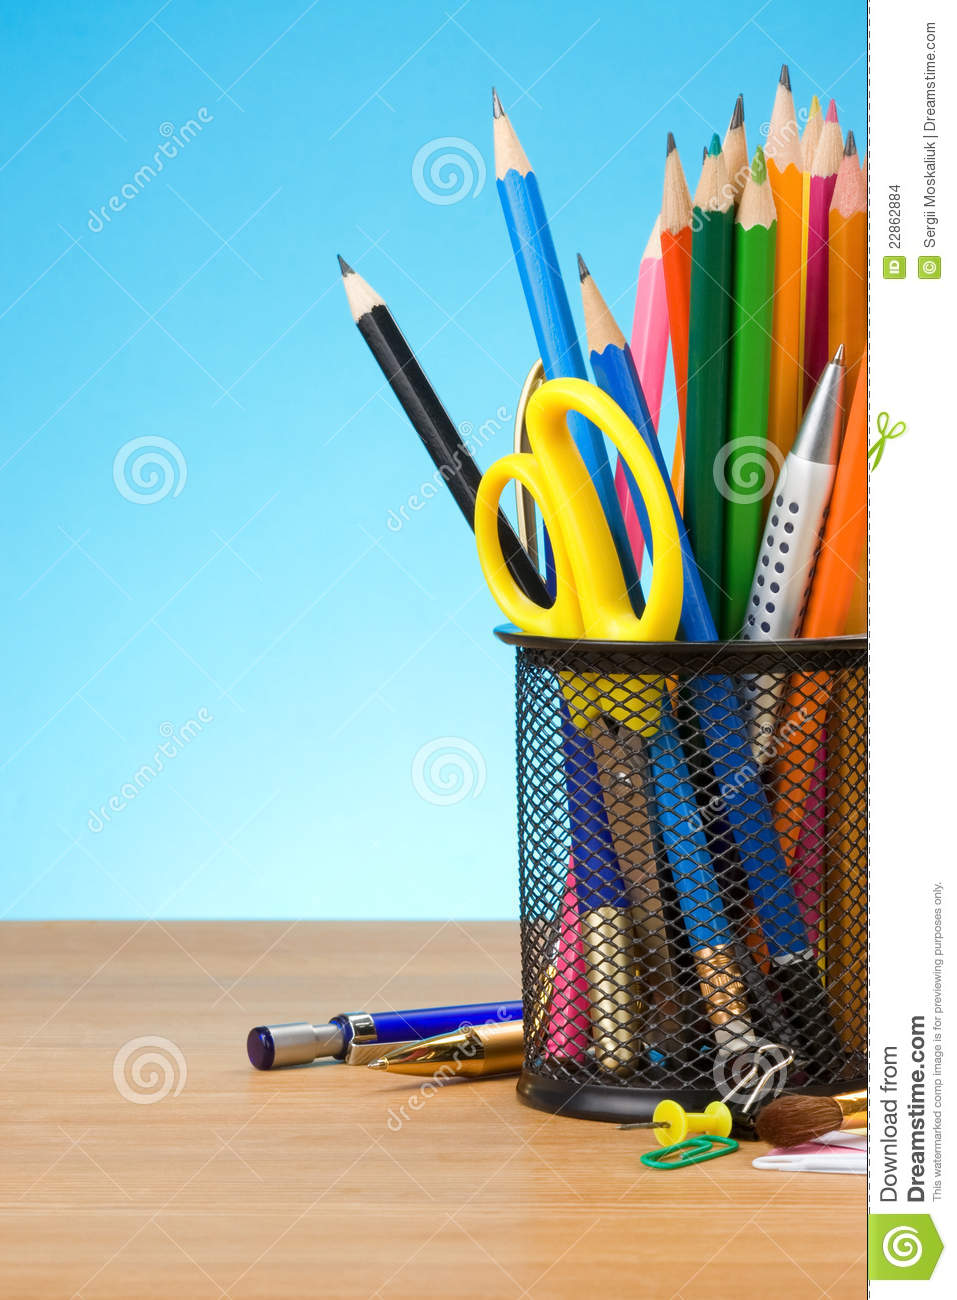 Pen and pens in holder